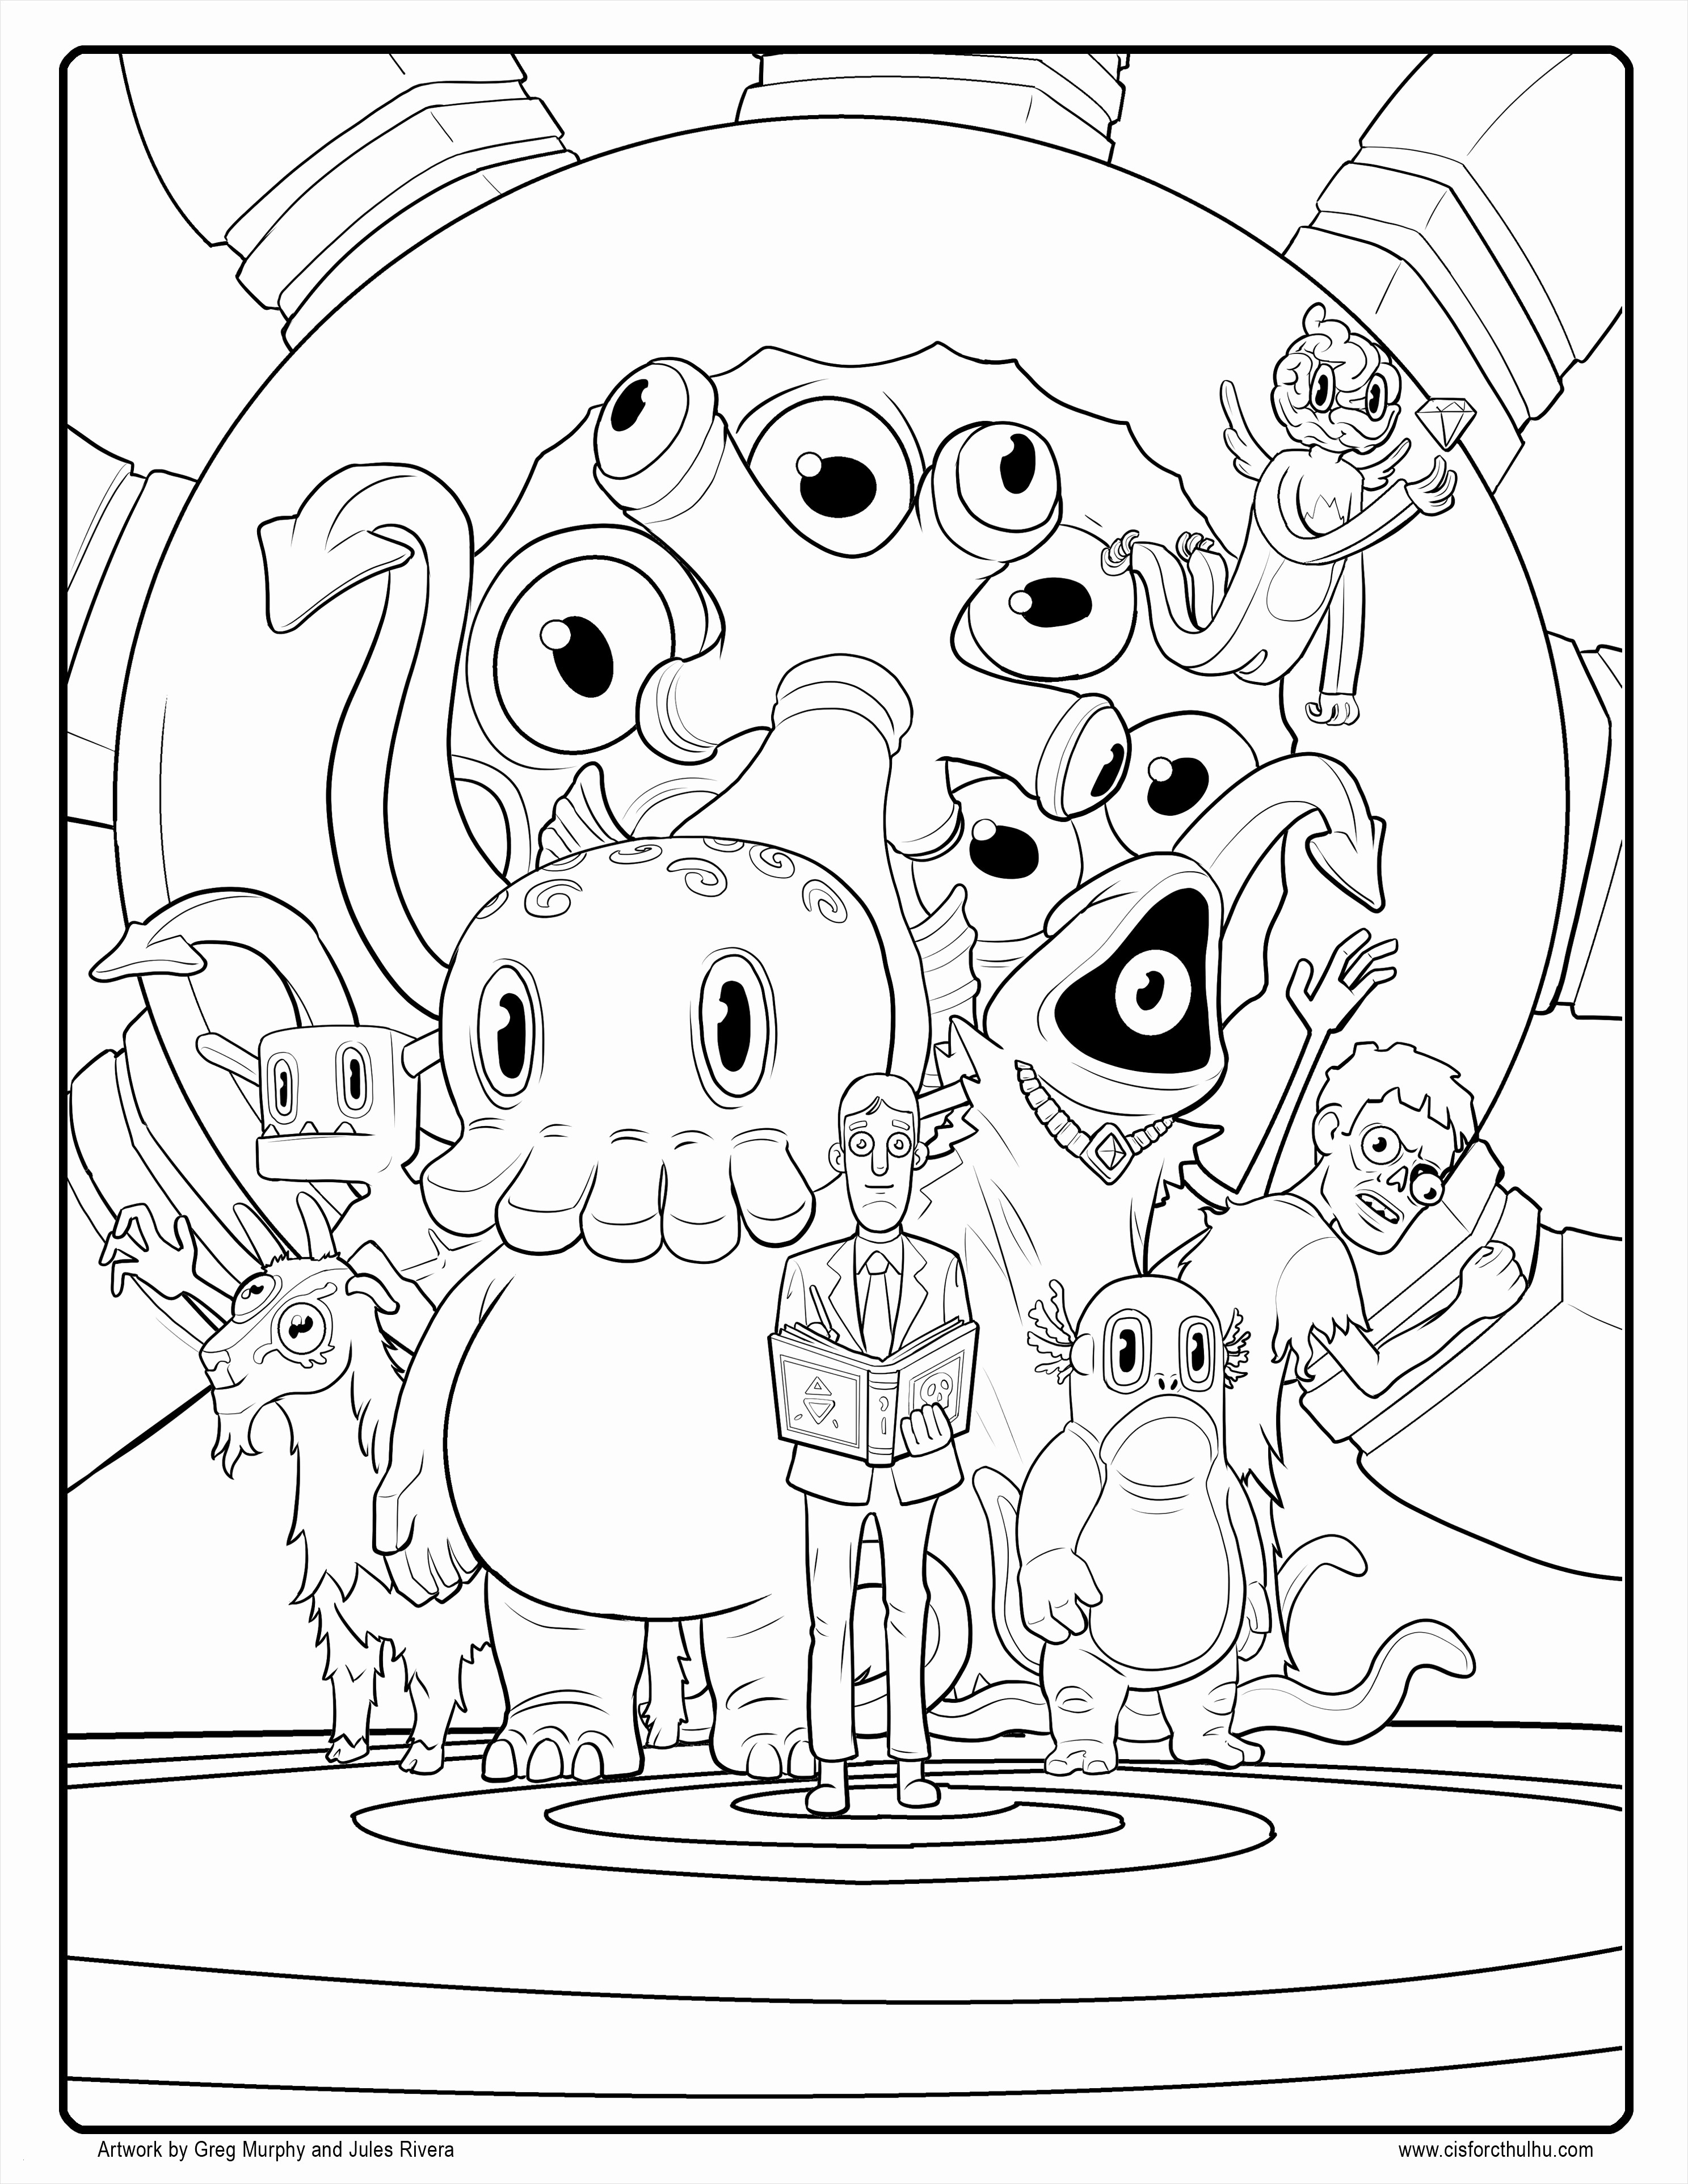 loon coloring pages Download-Countries Coloring Pages Cool Www Coloring Pages Letramac 10-m